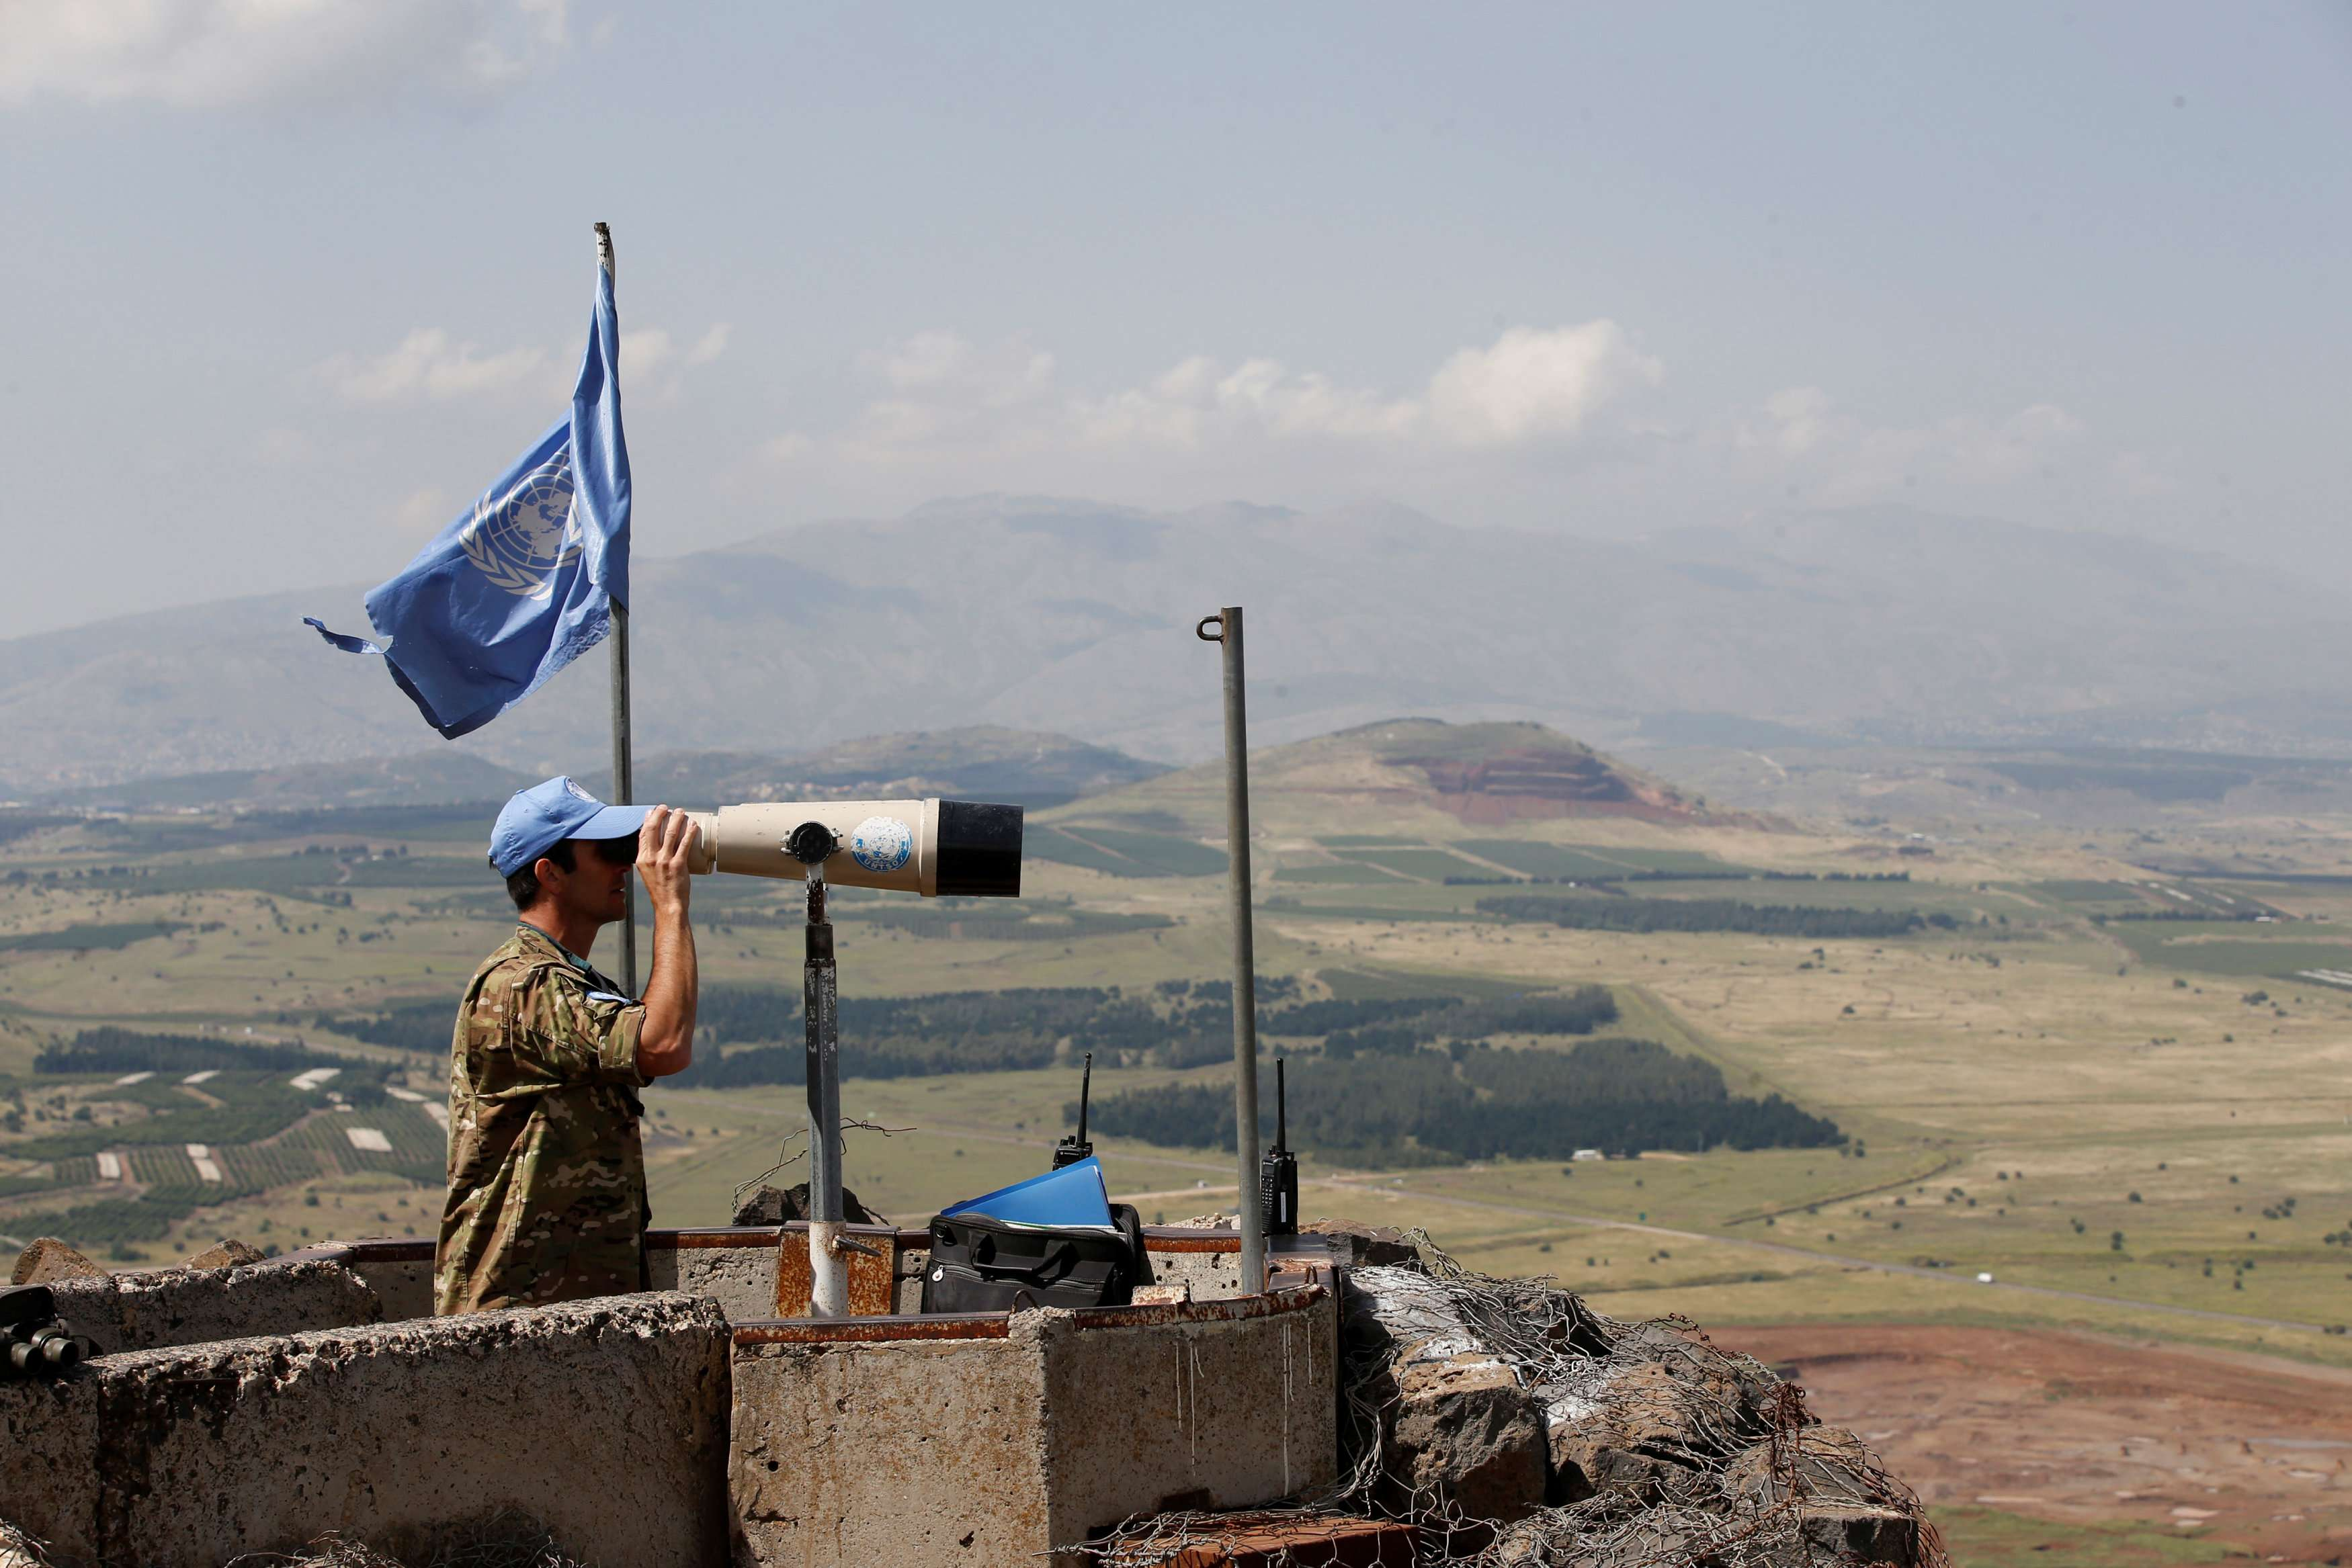 Contested territory. A UN Truce Supervision Organisation observer uses binoculars near the border with Syria in the Israeli-occupied Golan Heights, on May 11. (Reuters)